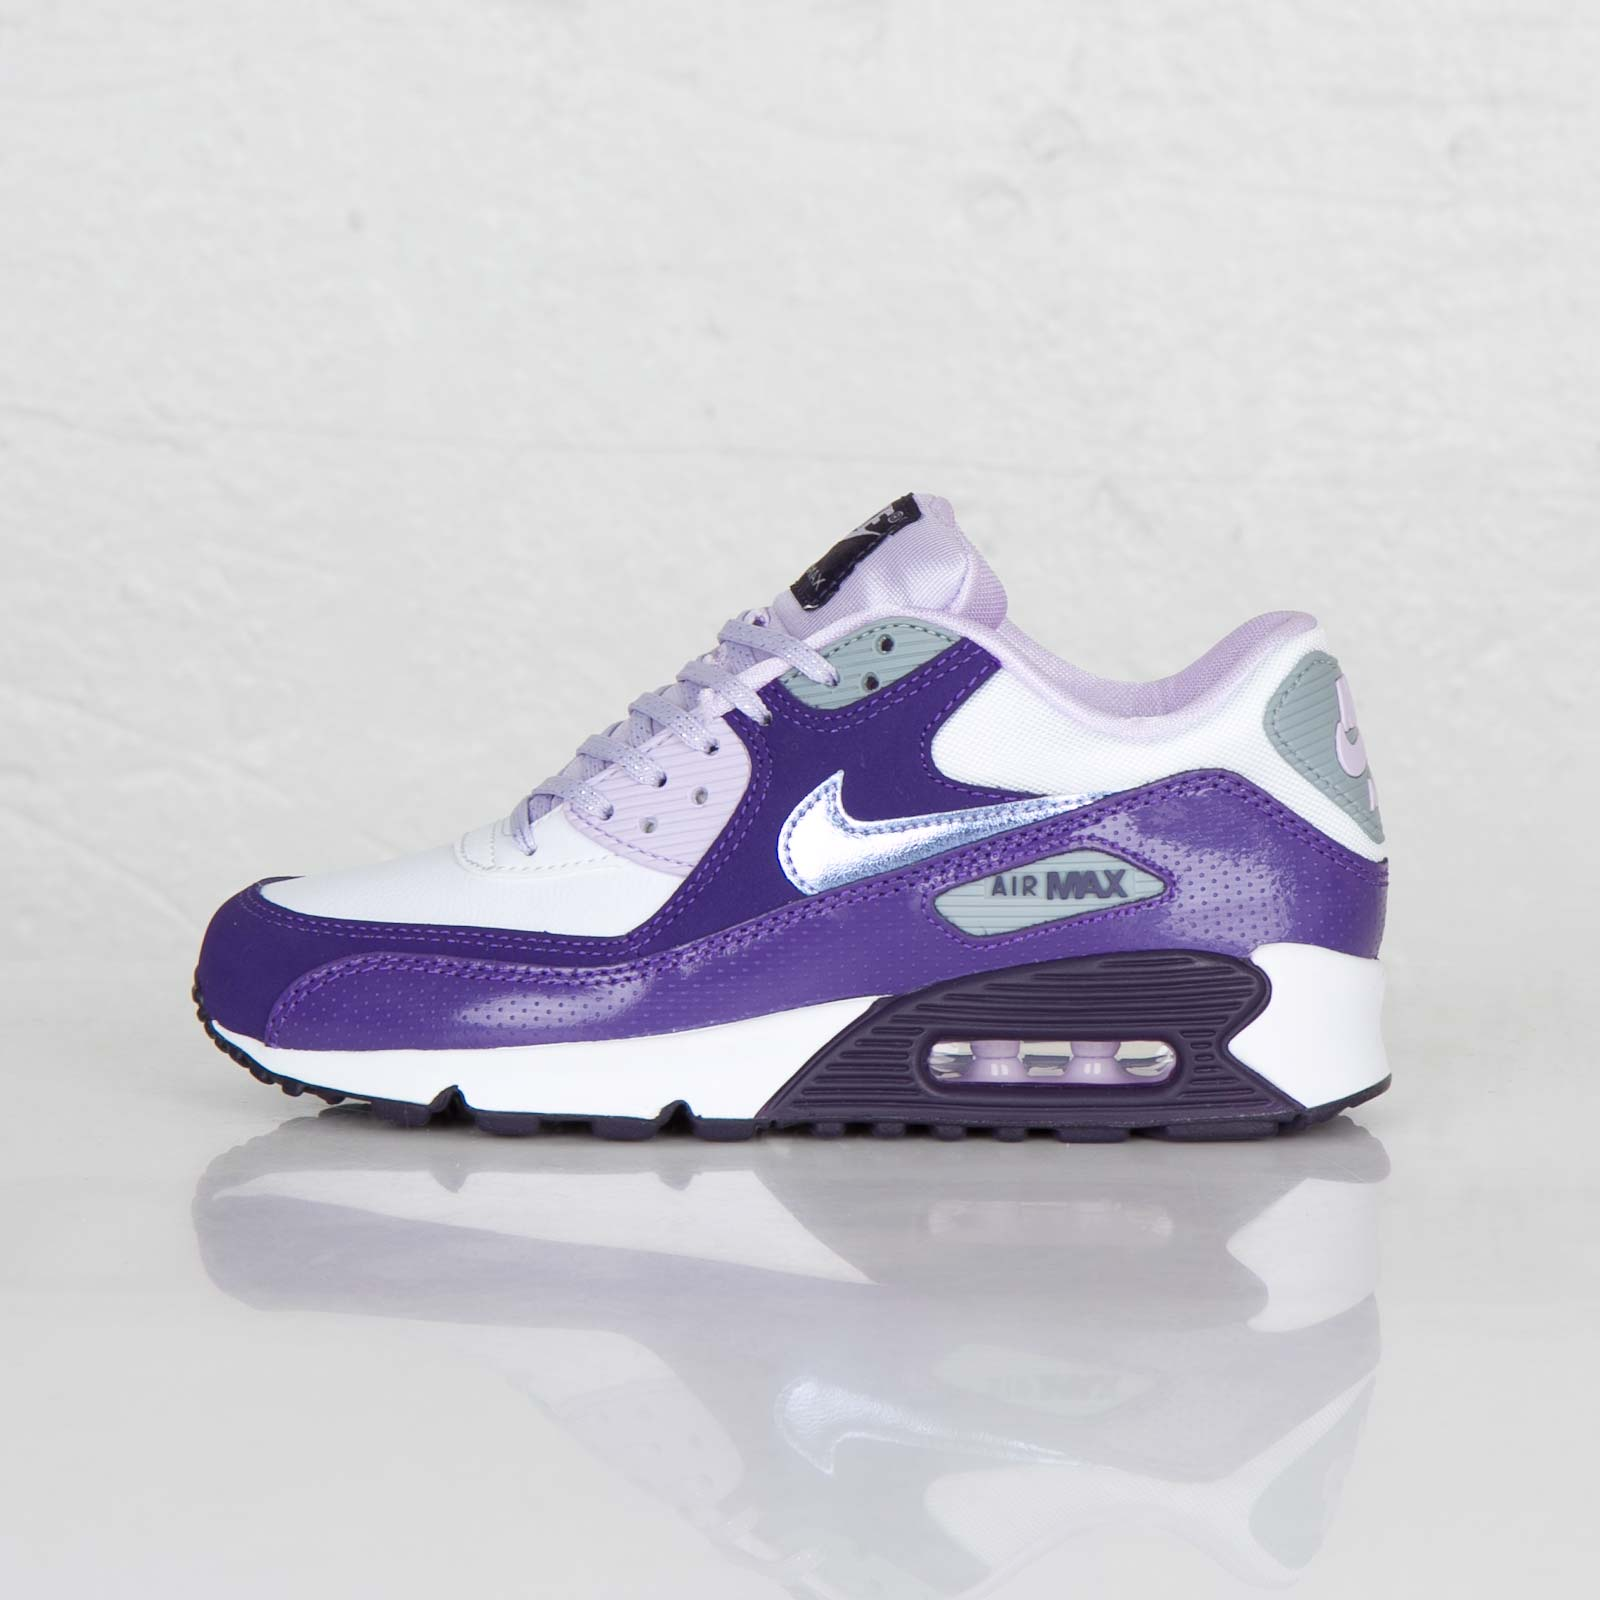 separation shoes eaff5 7055e Nike Air Max 90 2007 (GS) - 345017-118 - Sneakersnstuff   sneakers    streetwear online since 1999